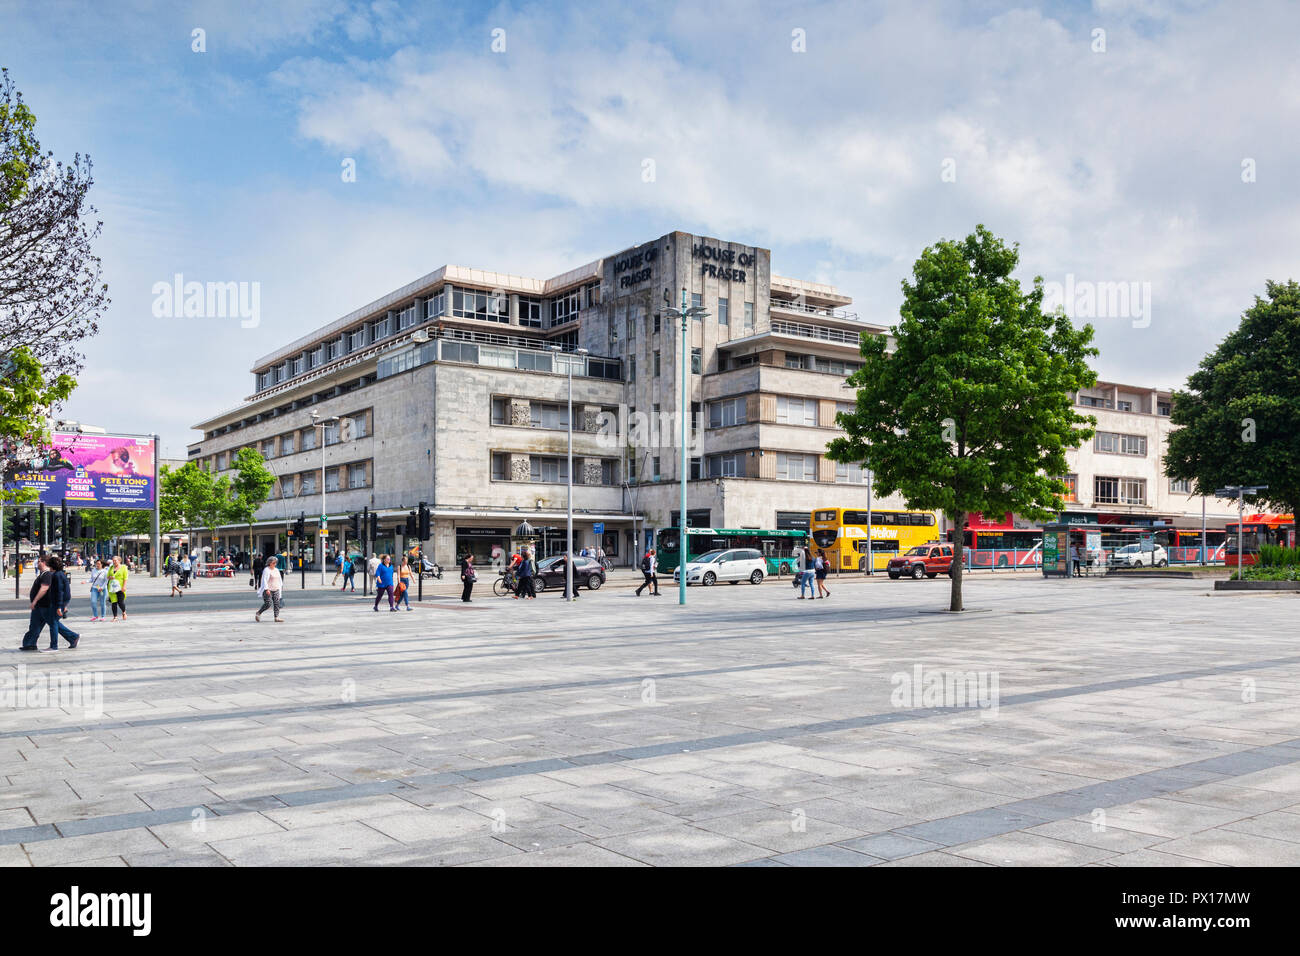 8 June 2018: Plymouth, Devon, UK - House of Fraser in Royal Parade, one of 31 stores whose closure has been announced. - Stock Image